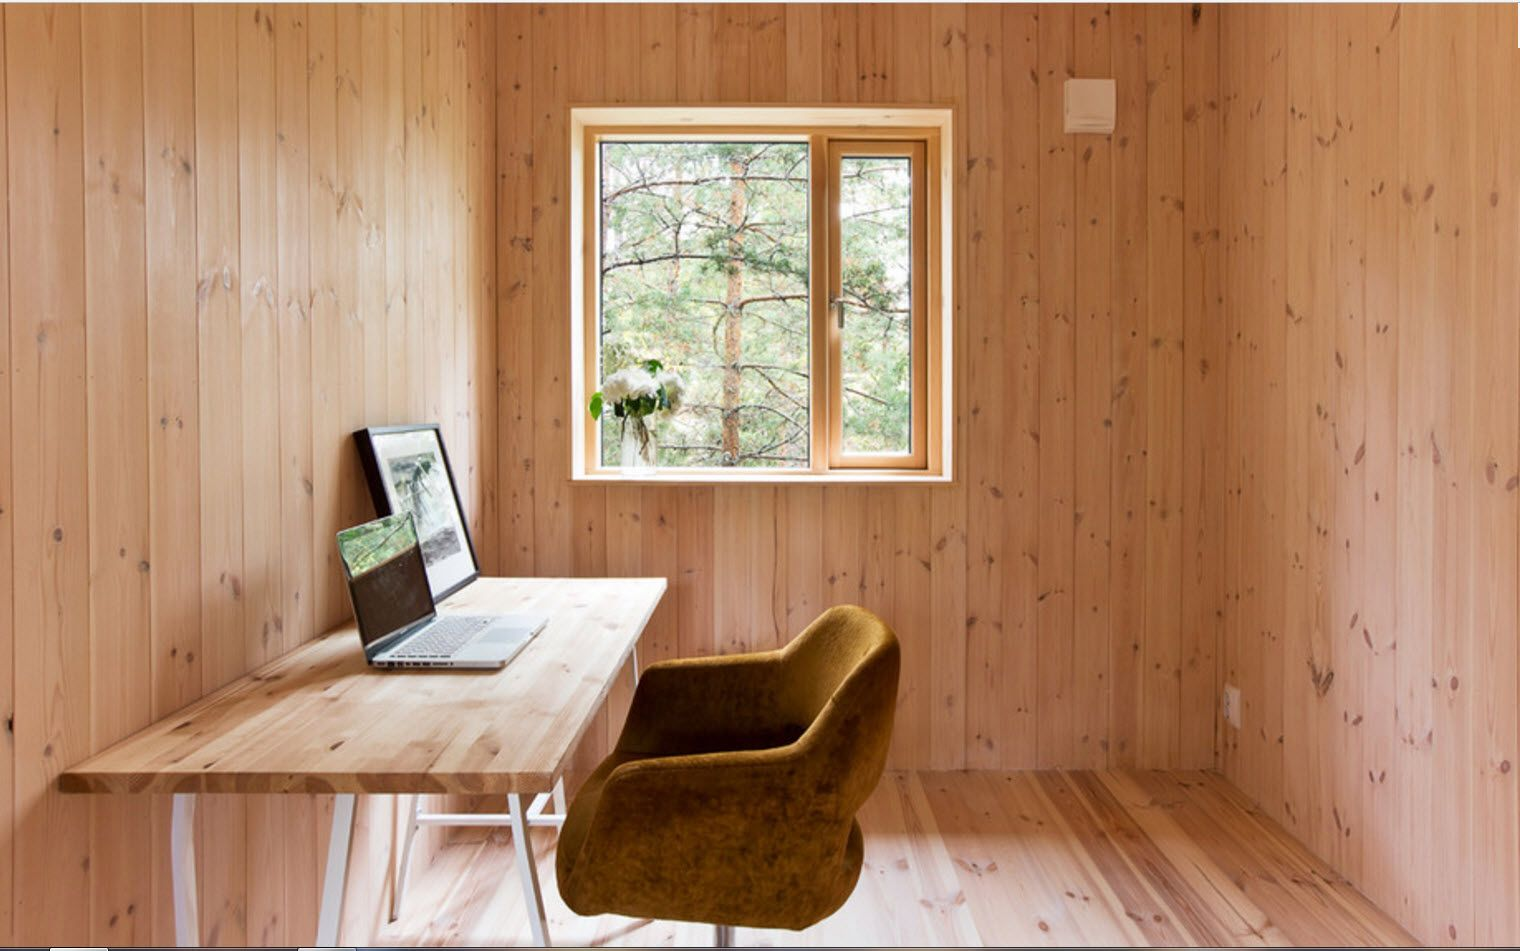 totally wooden okanked home office with natural sight out of the window